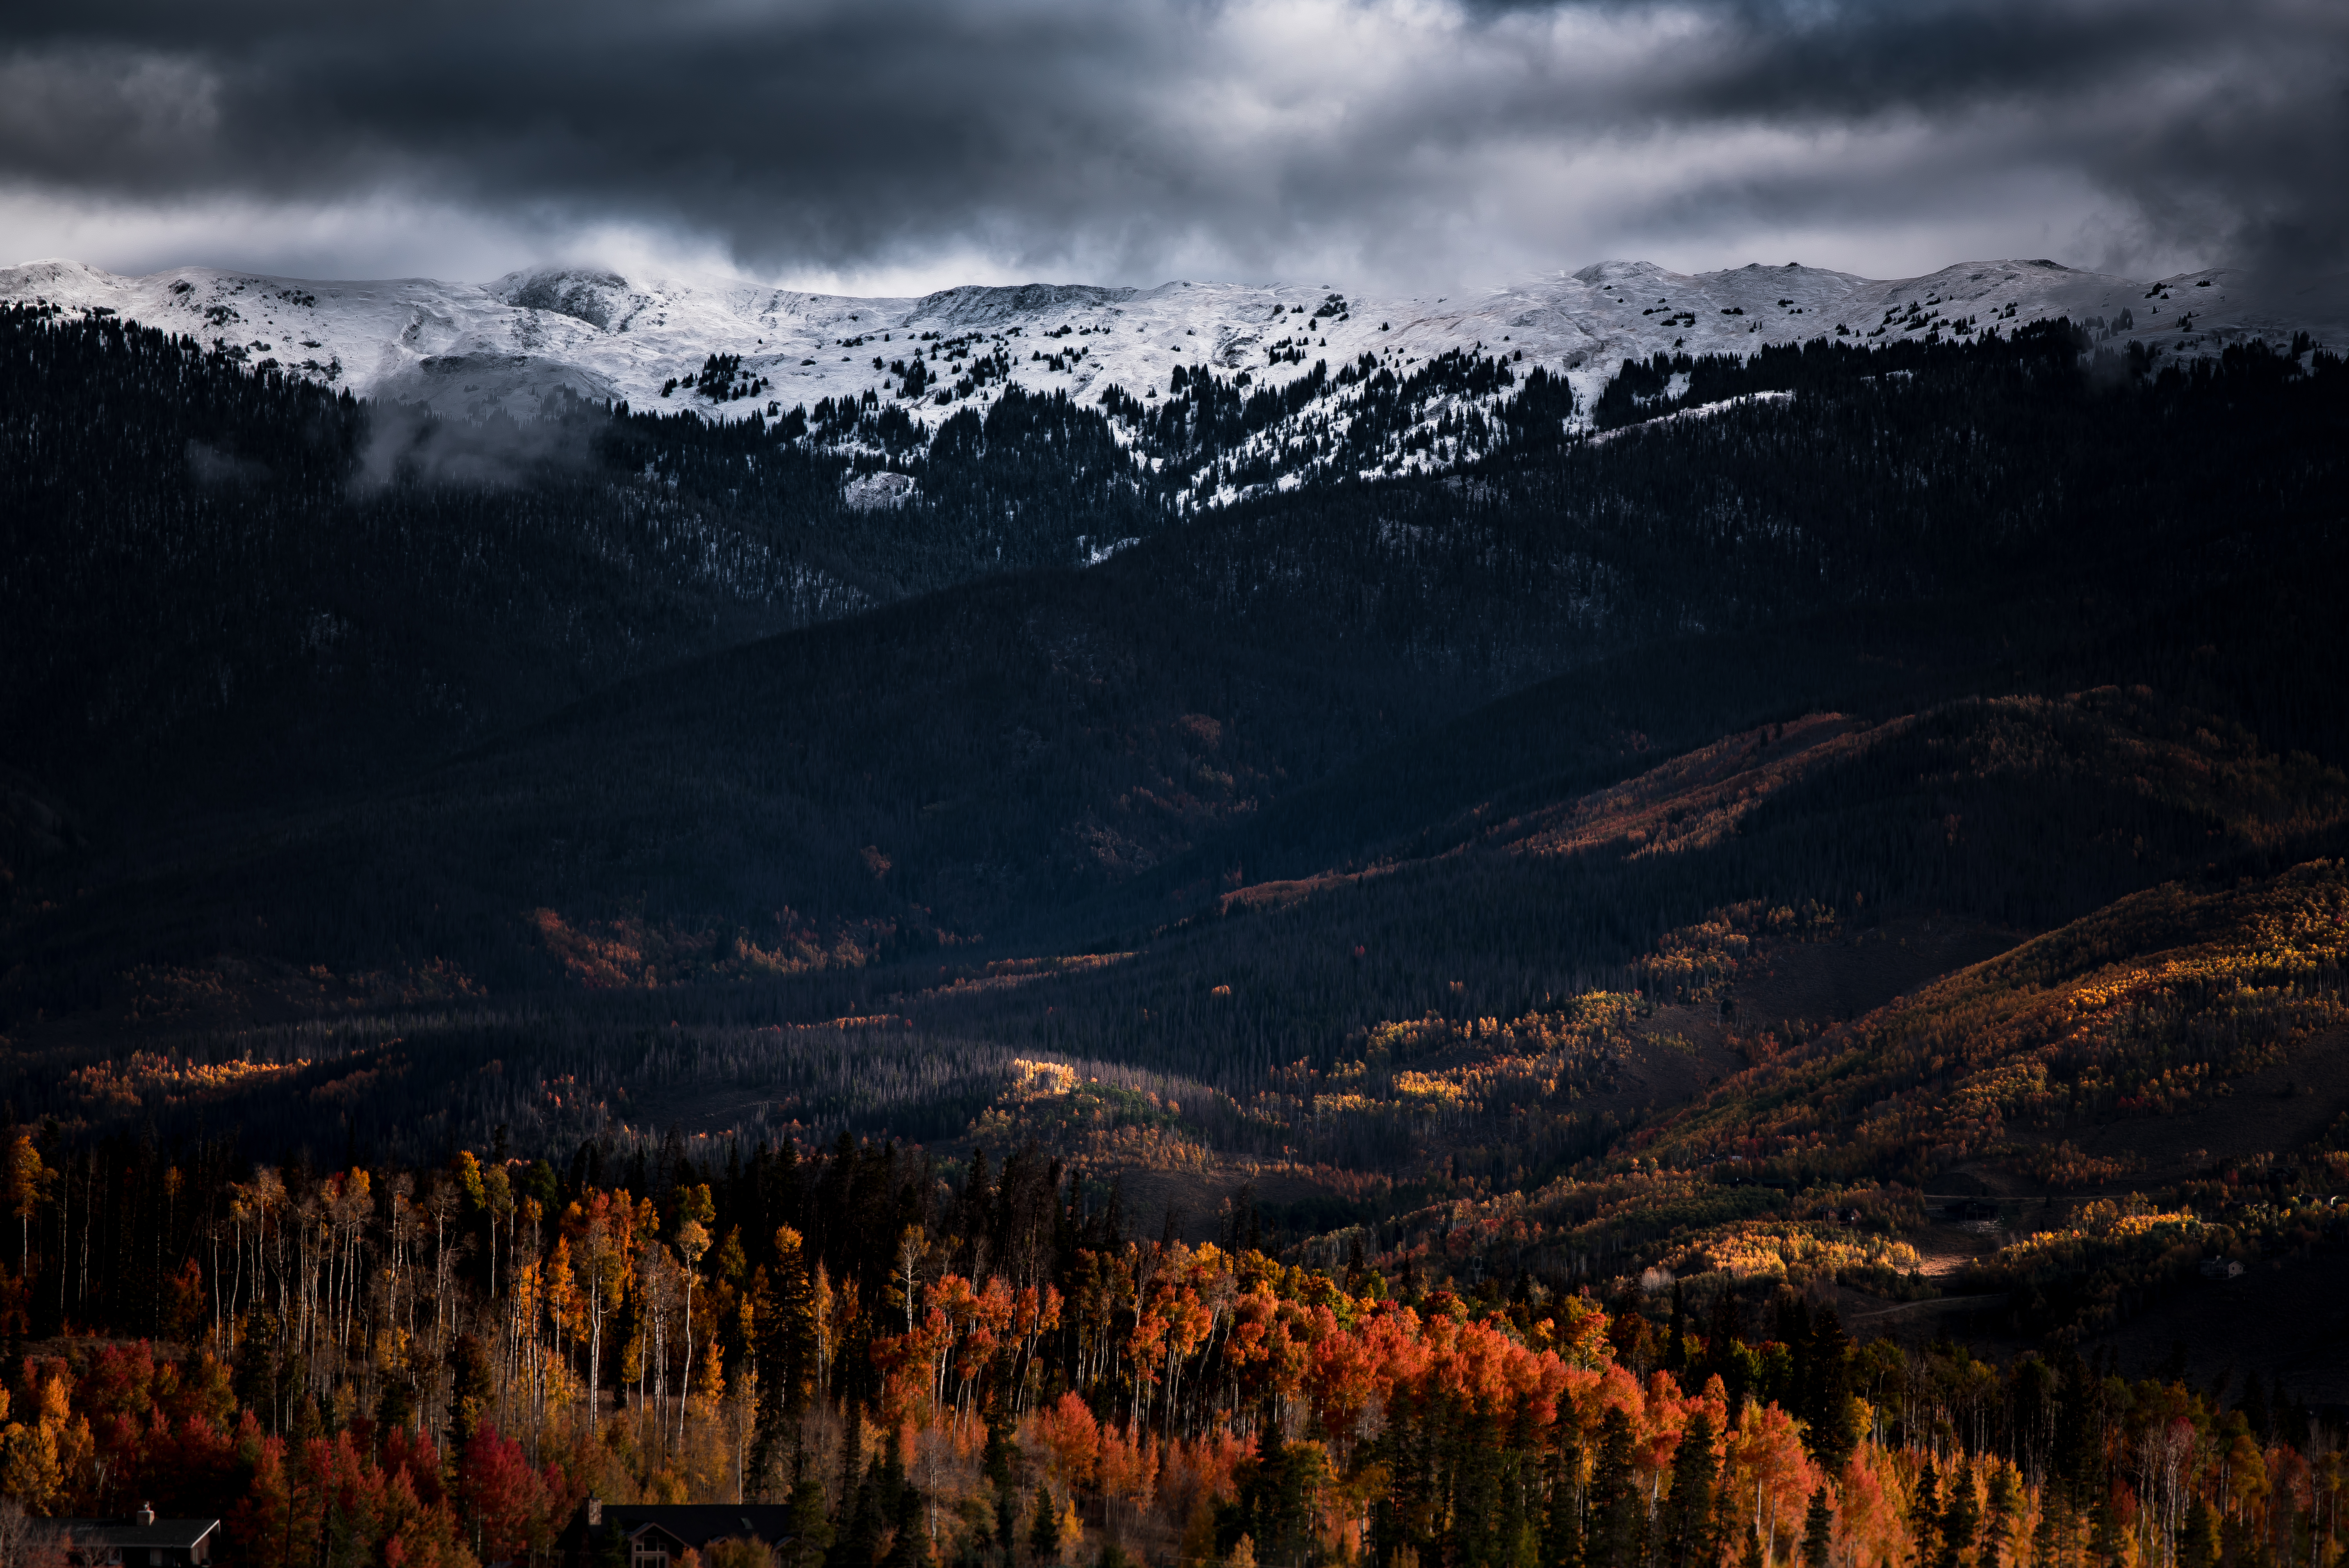 Fall Pictures For Wallpaper Free 100 Best Free Hd Harmony Photos On Unsplash